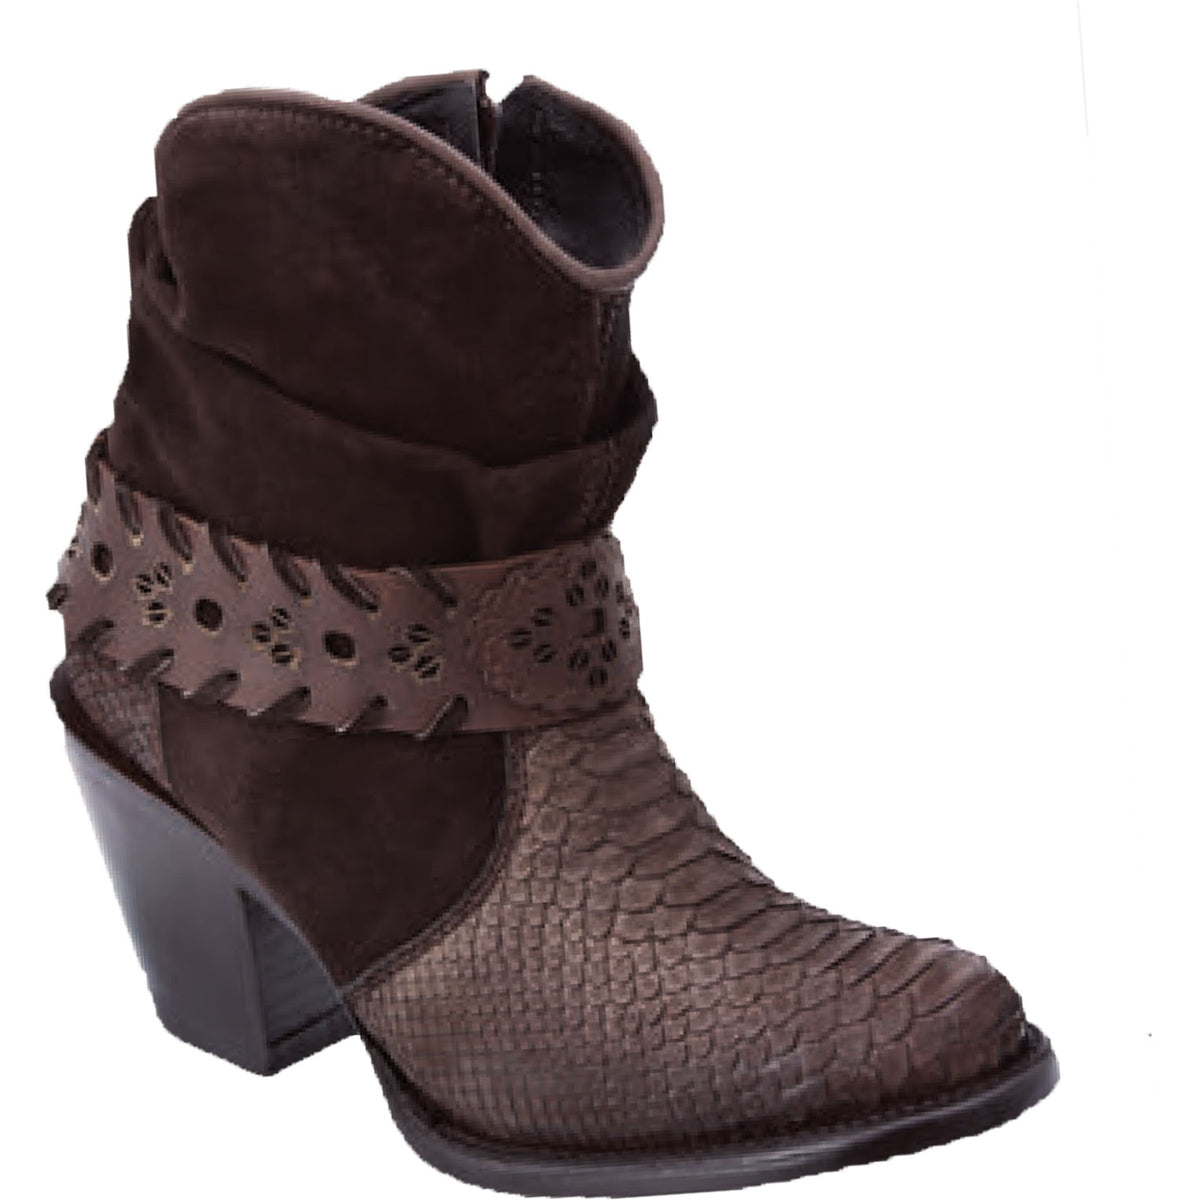 Original Python Skin Ankle Boot WD577